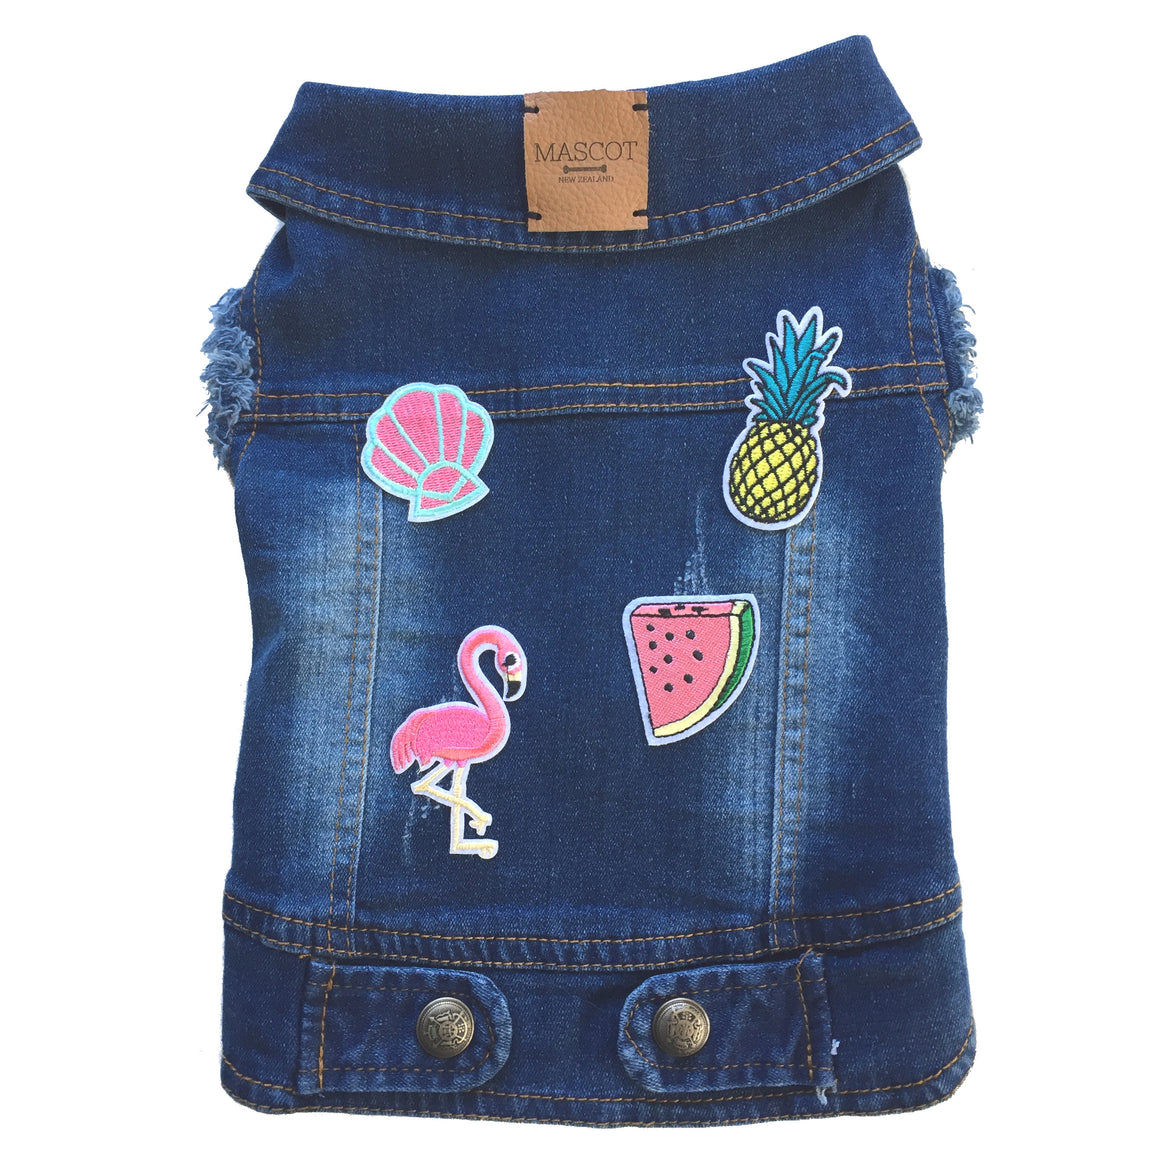 The Tutti Frutti Denim Vest